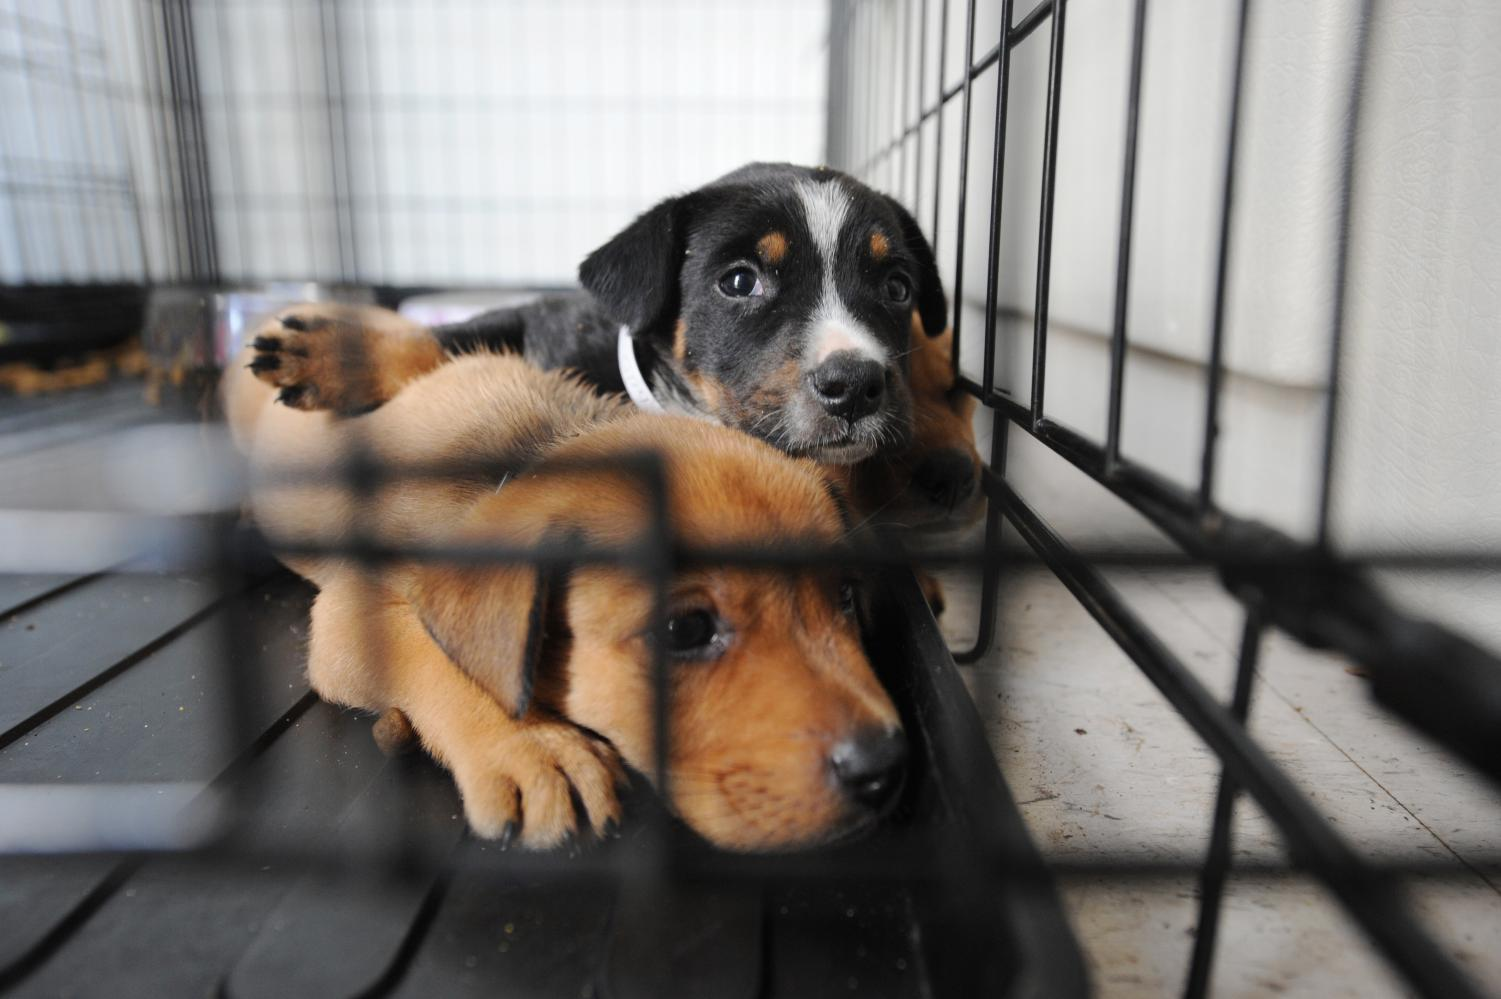 Dogs displaced by Hurricane Ike are sheltered at the local center set up by the Humane Society. https://www.fema.gov/media-library/assets/images/54181